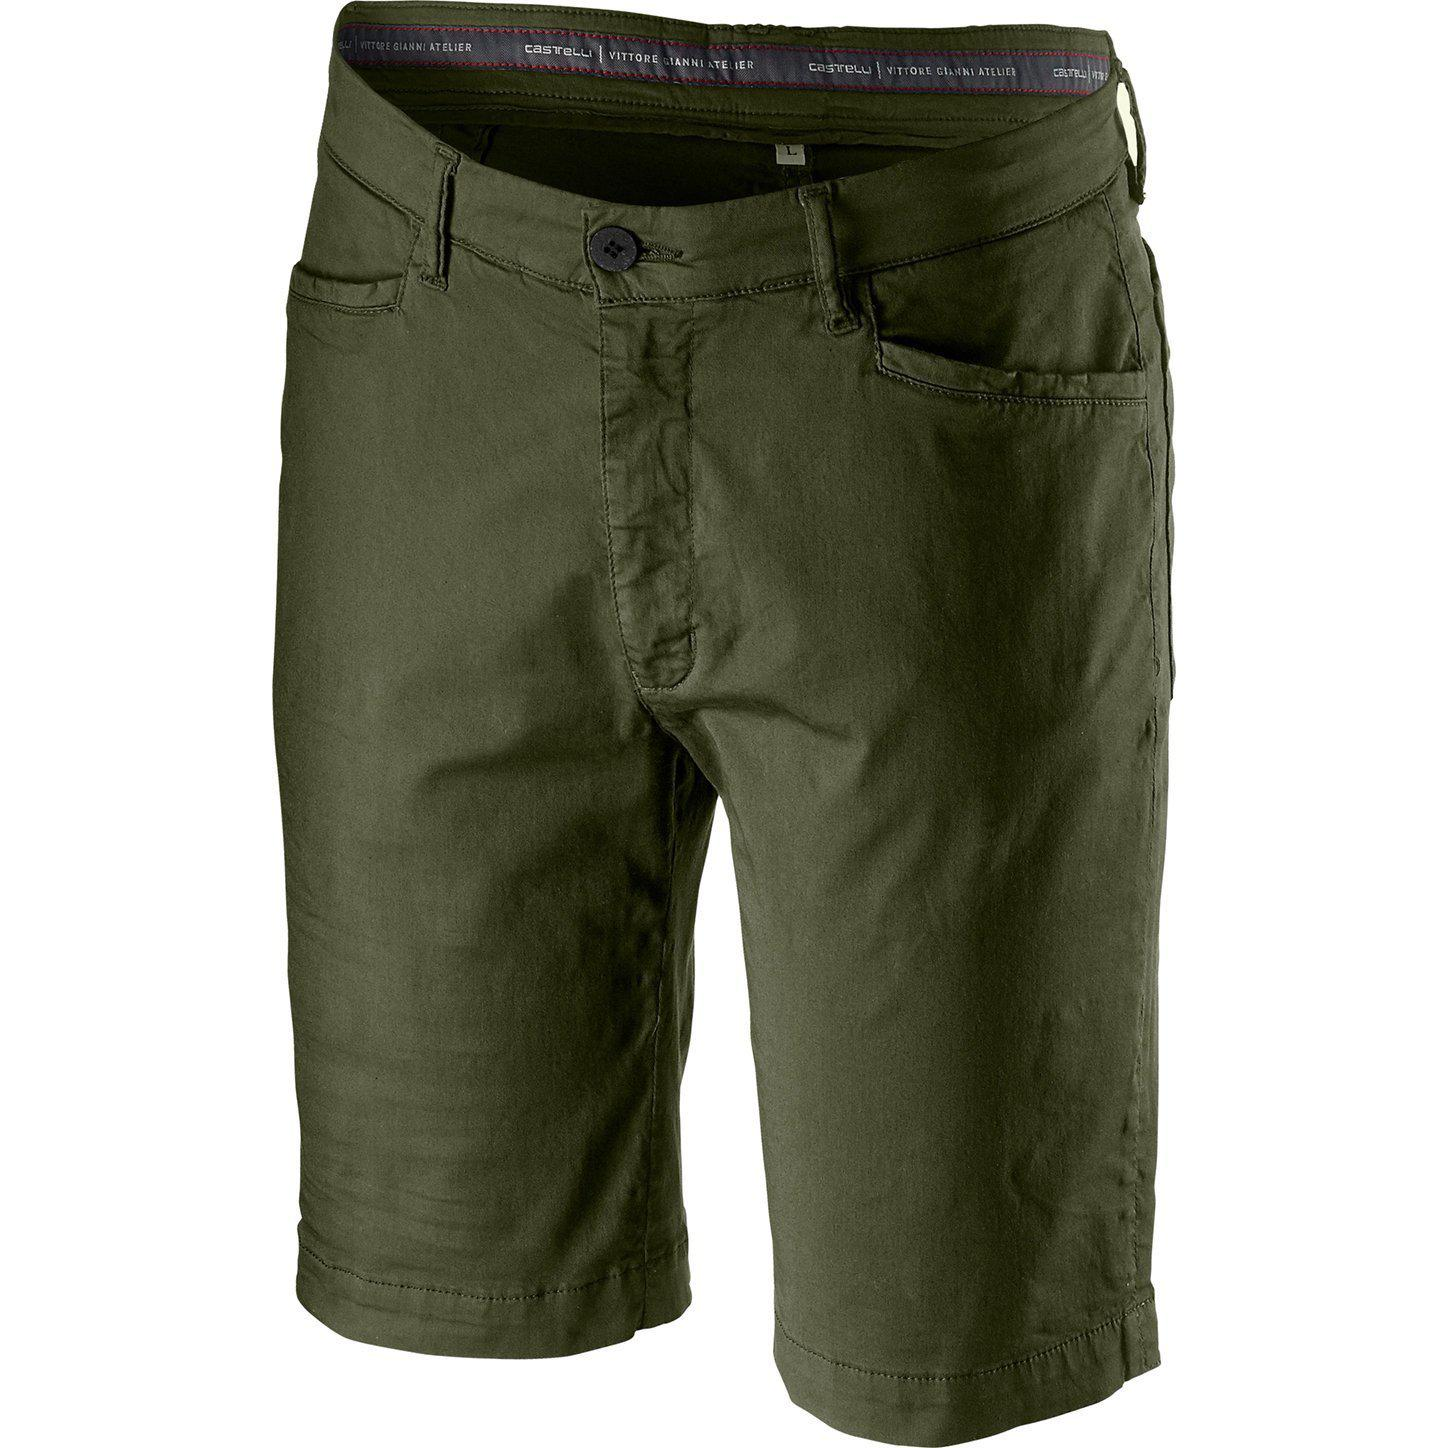 Castelli-Castelli VG 5 Pocket Short-Military Green-XS-CS201110751-saddleback-elite-performance-cycling